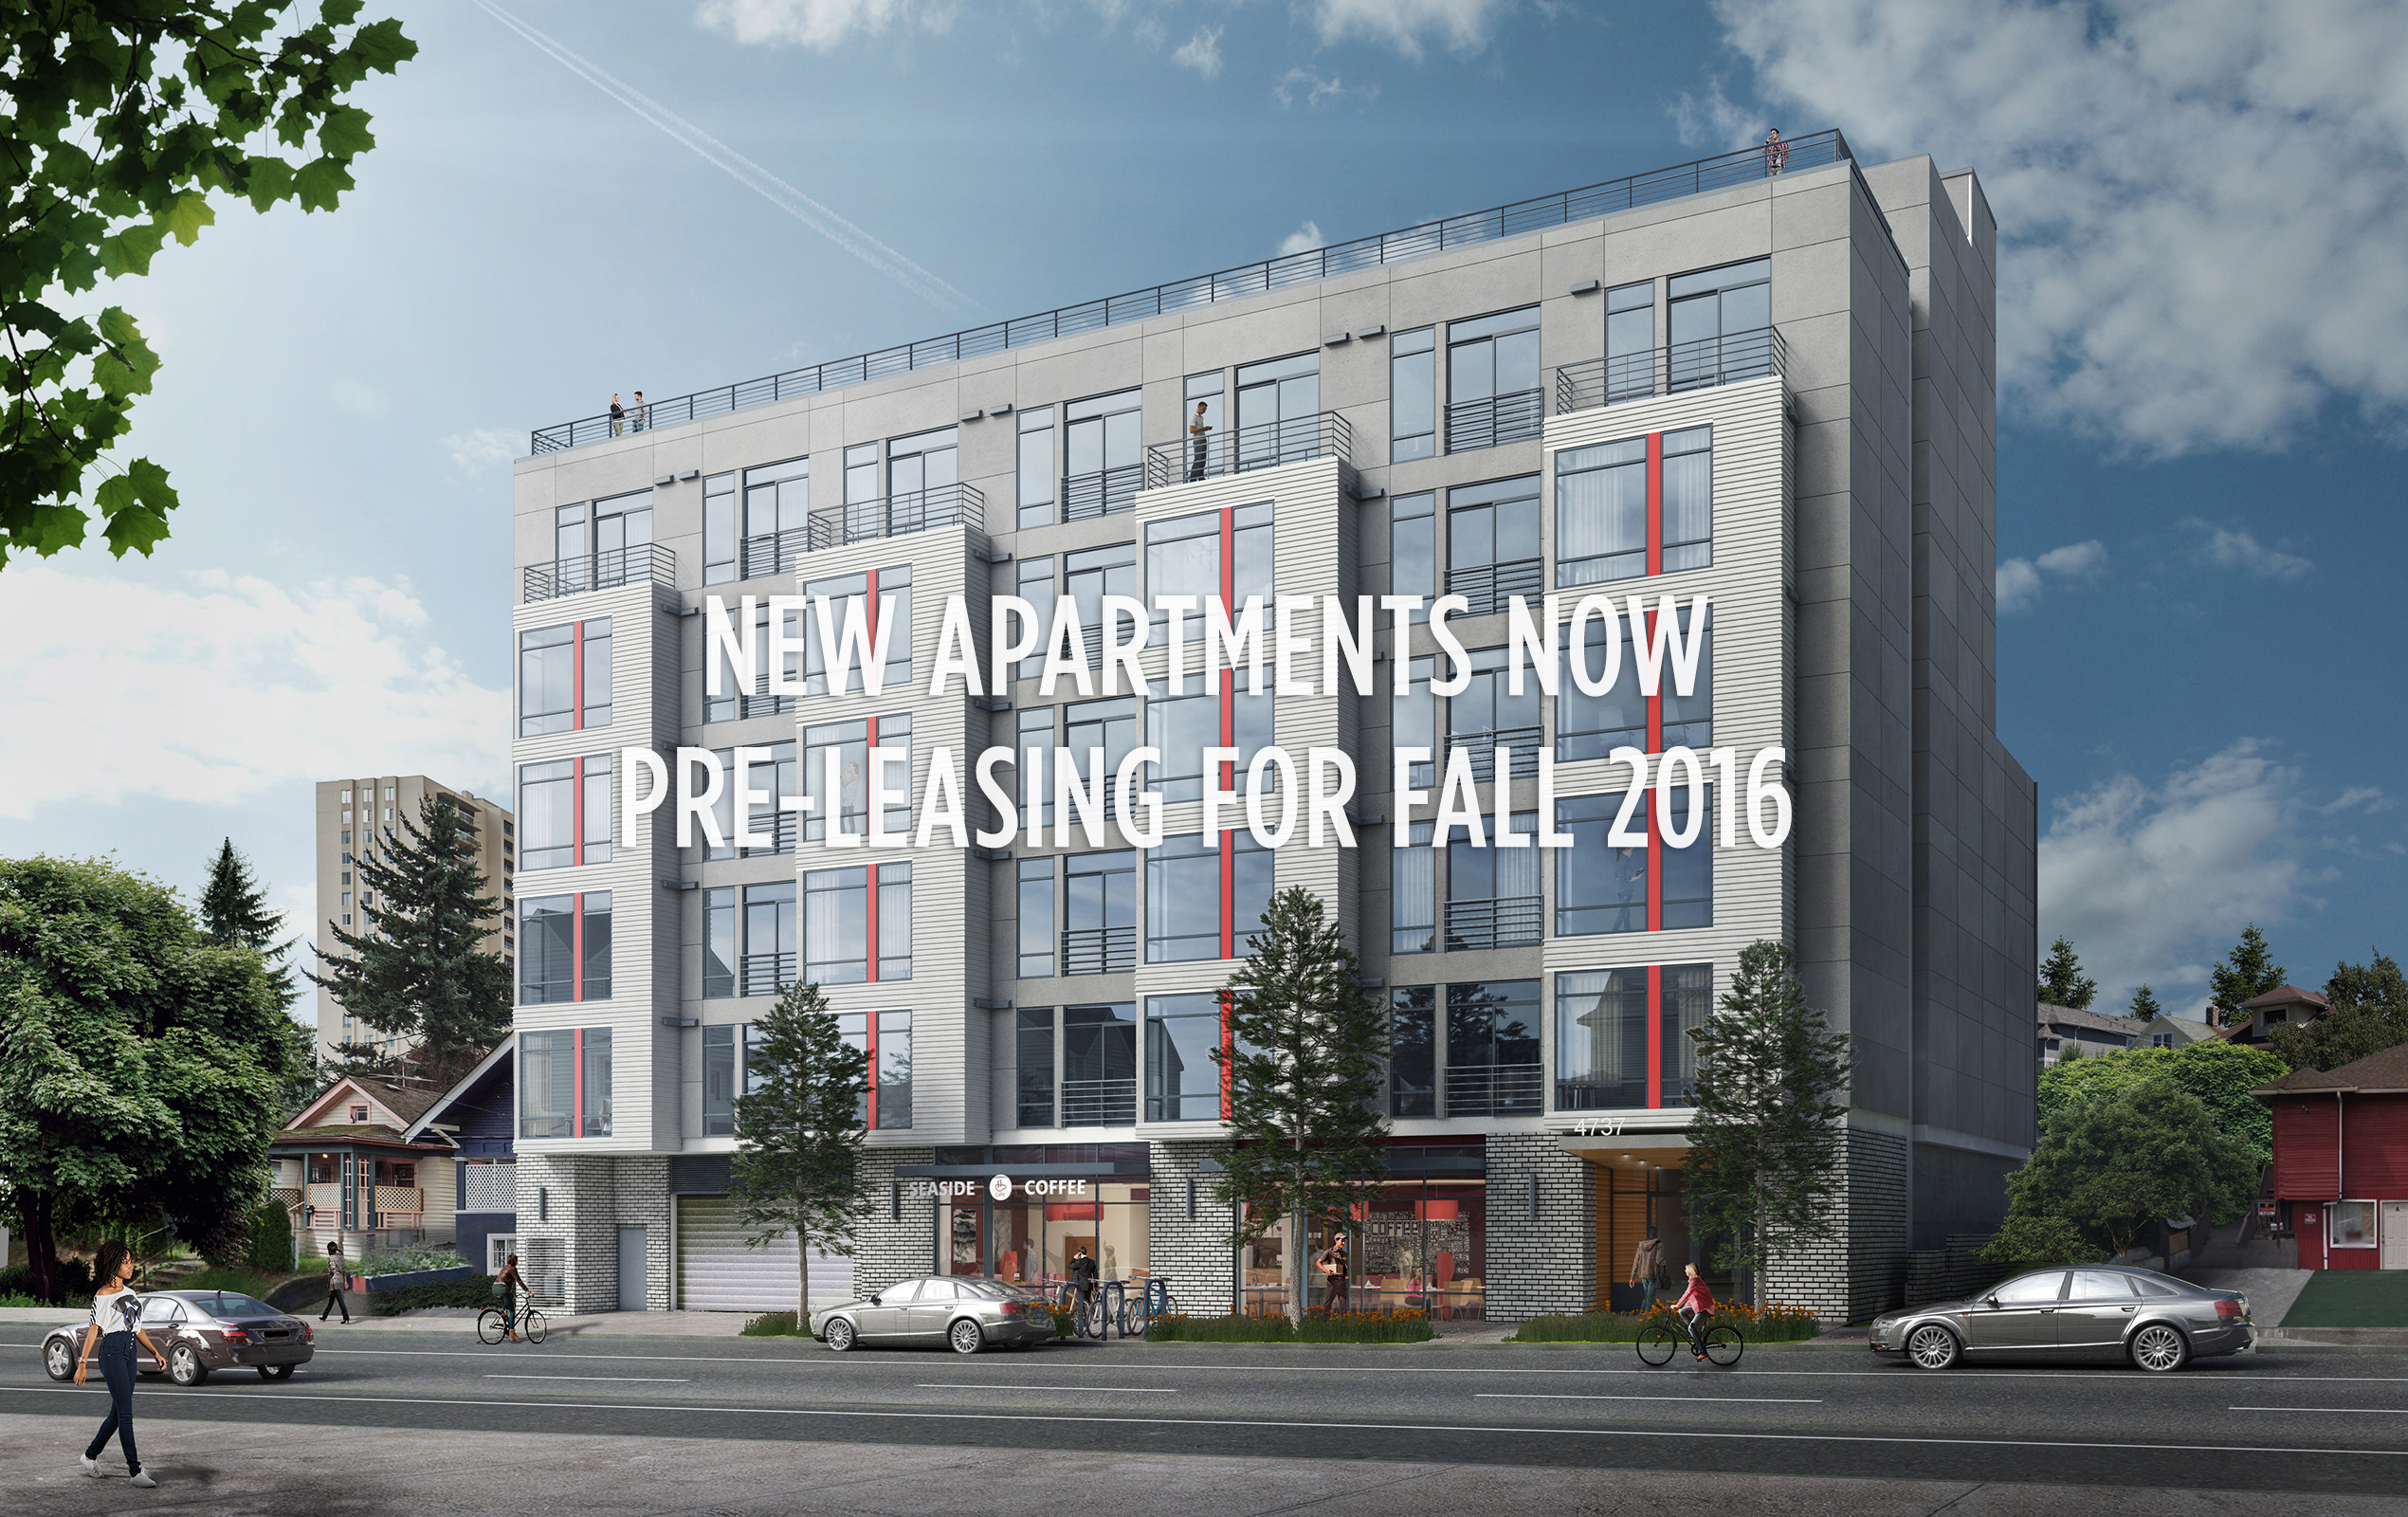 Prexy Exterior Photo: New Apartments Now Pre-Leasing For Fall 2016